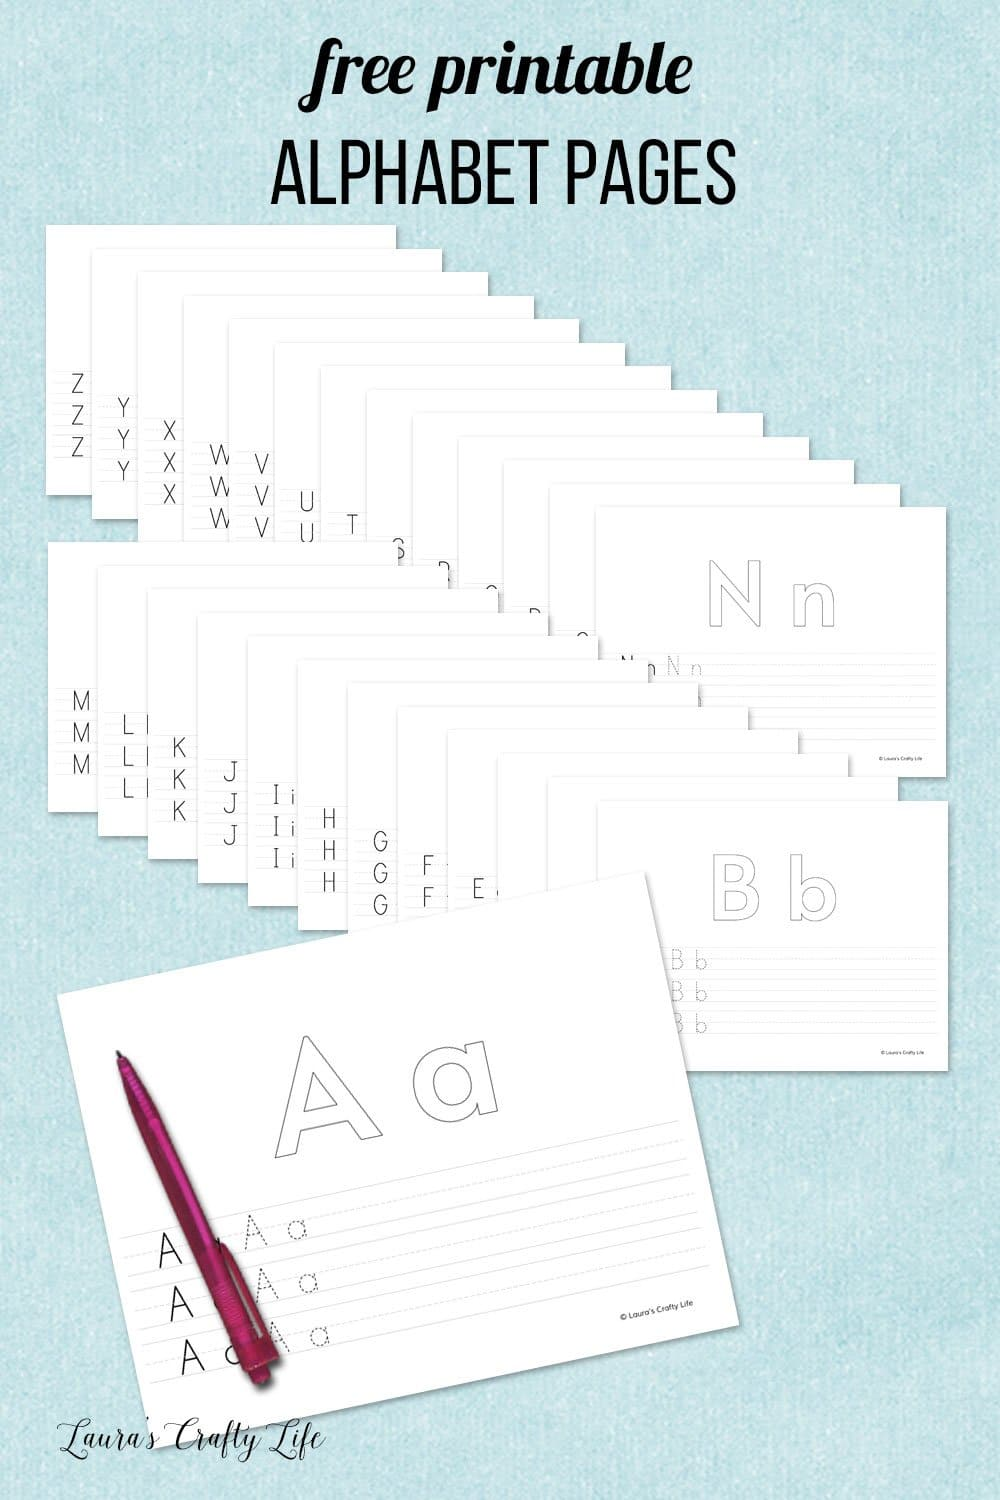 free printable alphabet pages